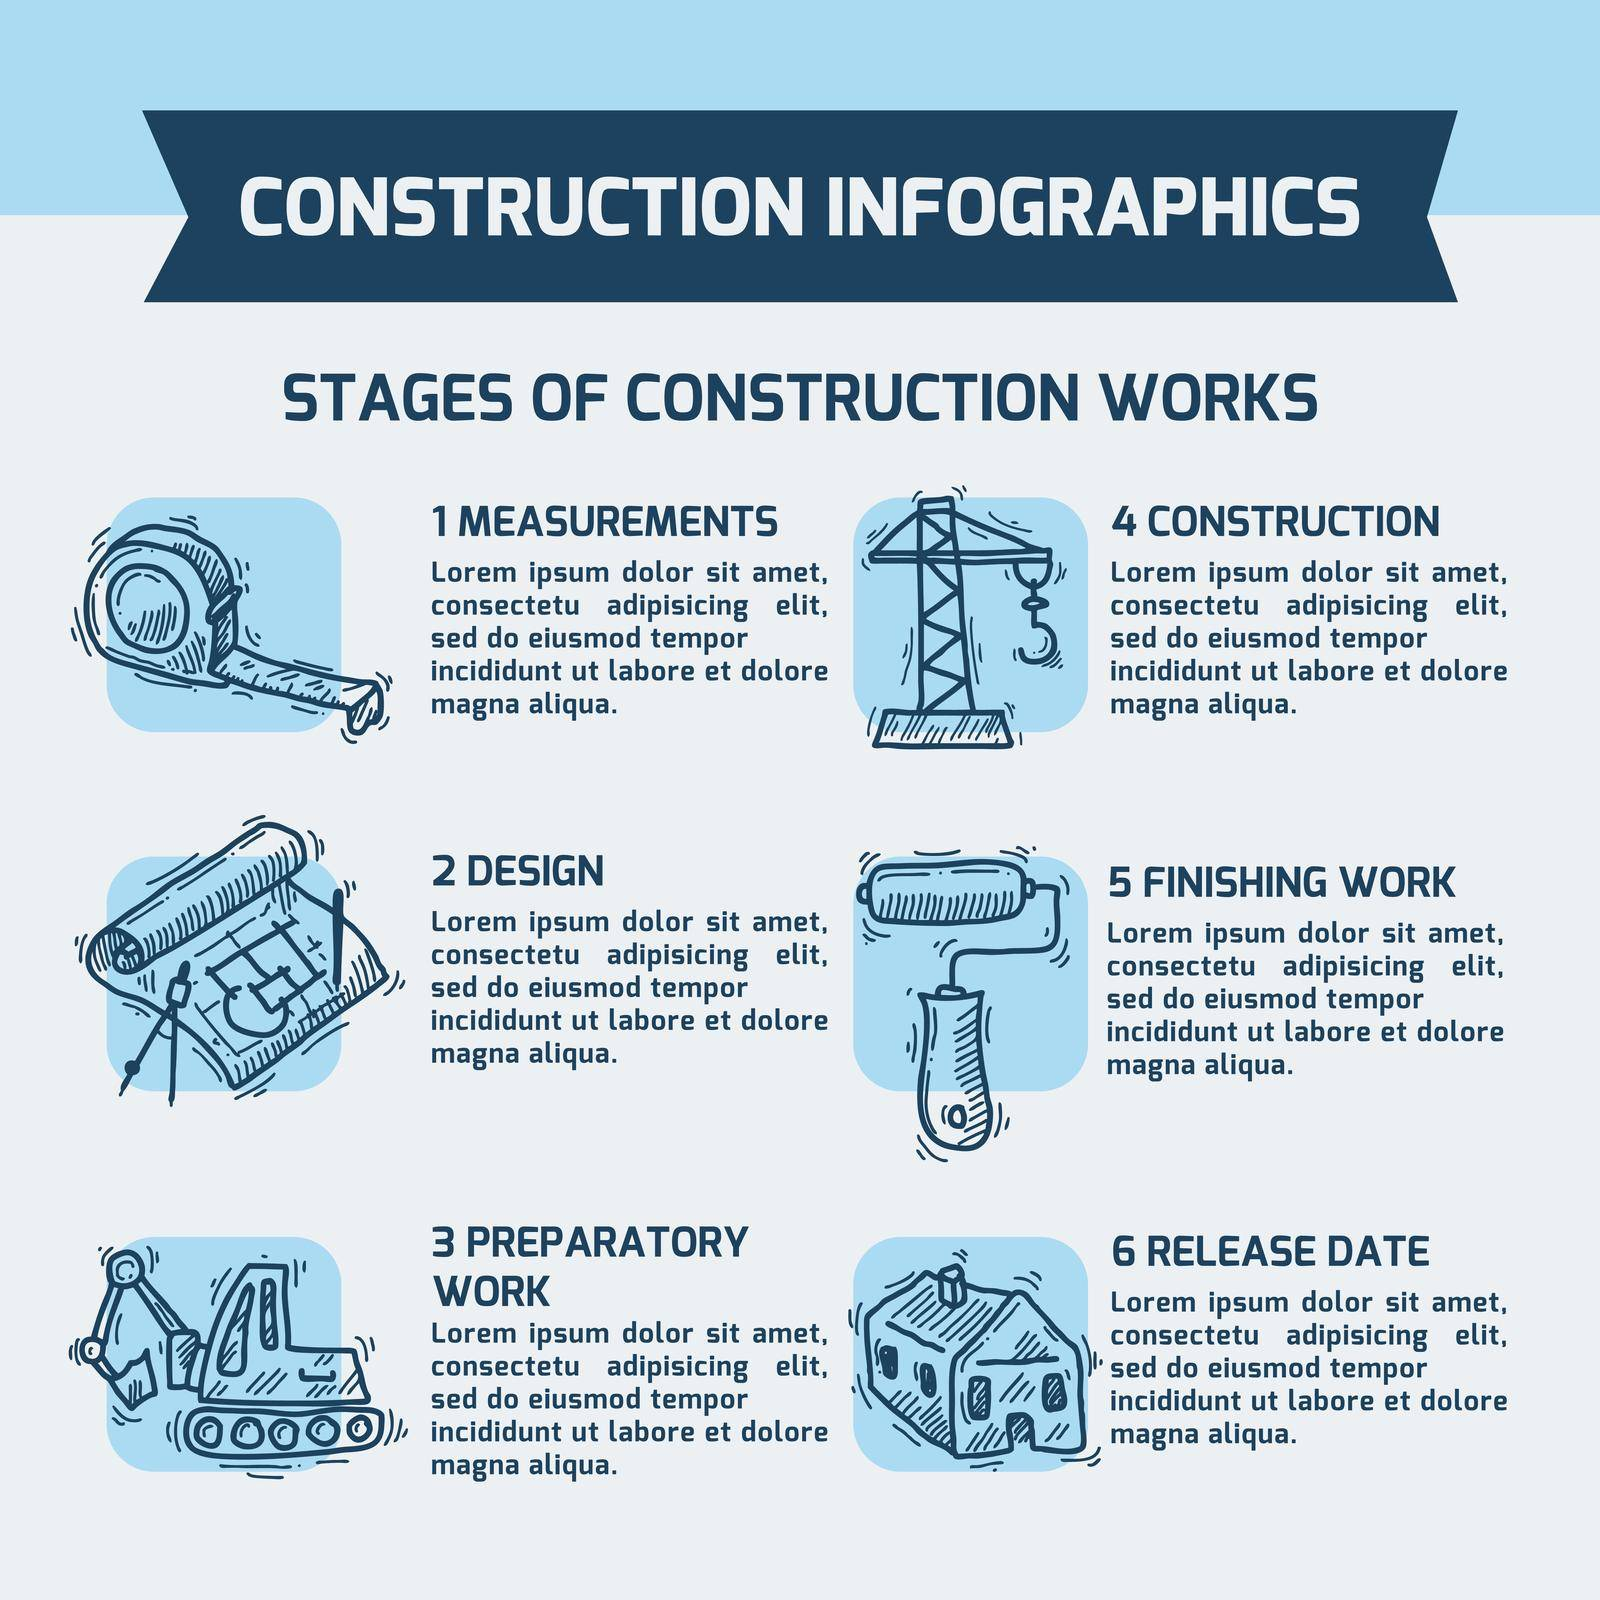 Construction stages infographics sketch set with measurement design preparatory finishing works delease date elements vector illustration